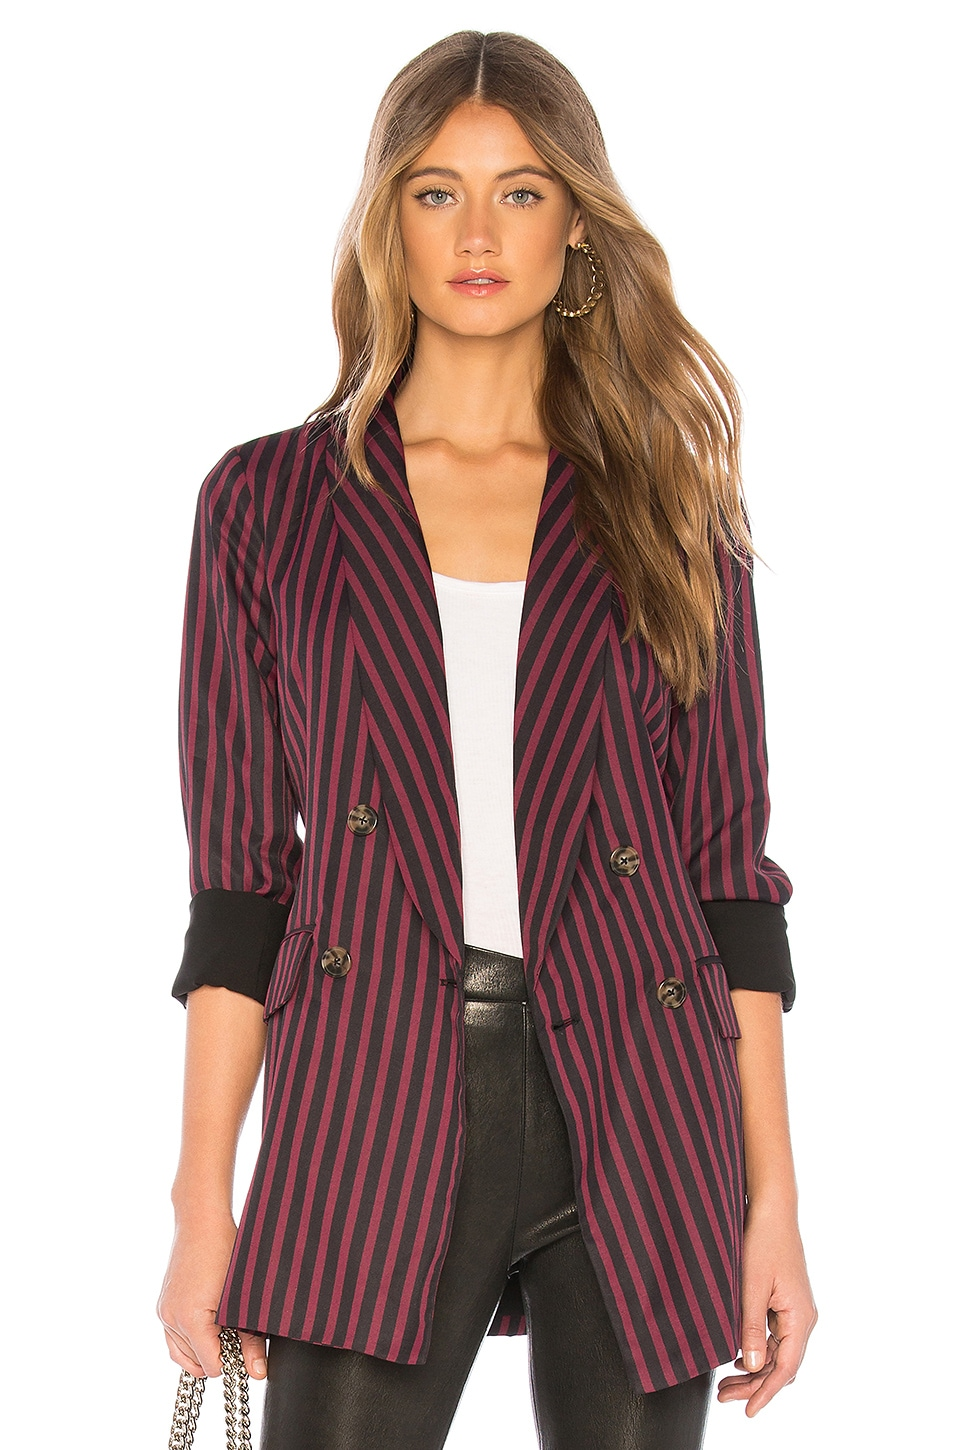 L'Academie The Lana Jacket in Red Stripe